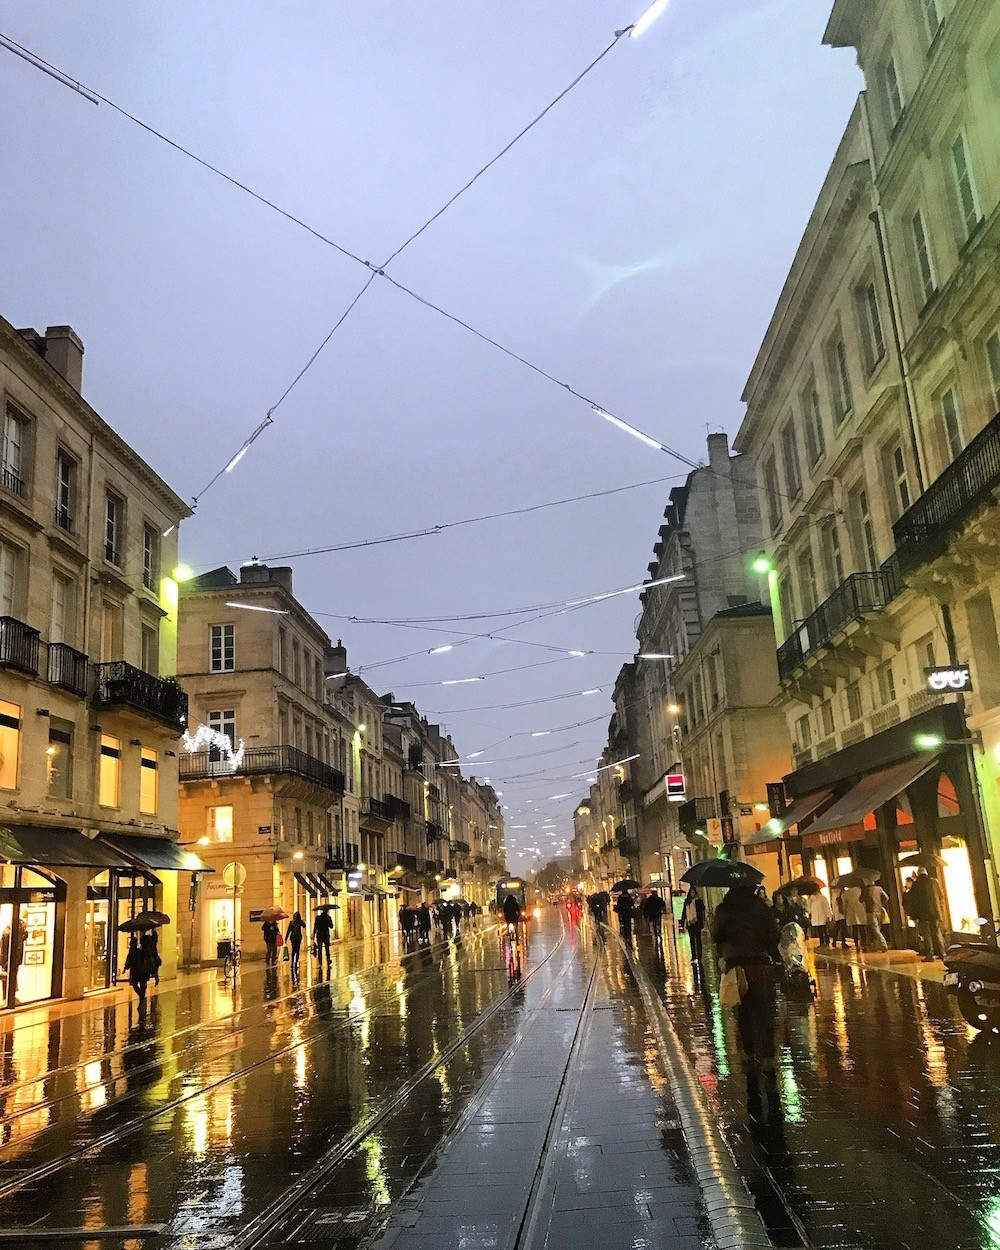 BORDEAUX INTENDANCE NOEL 2017